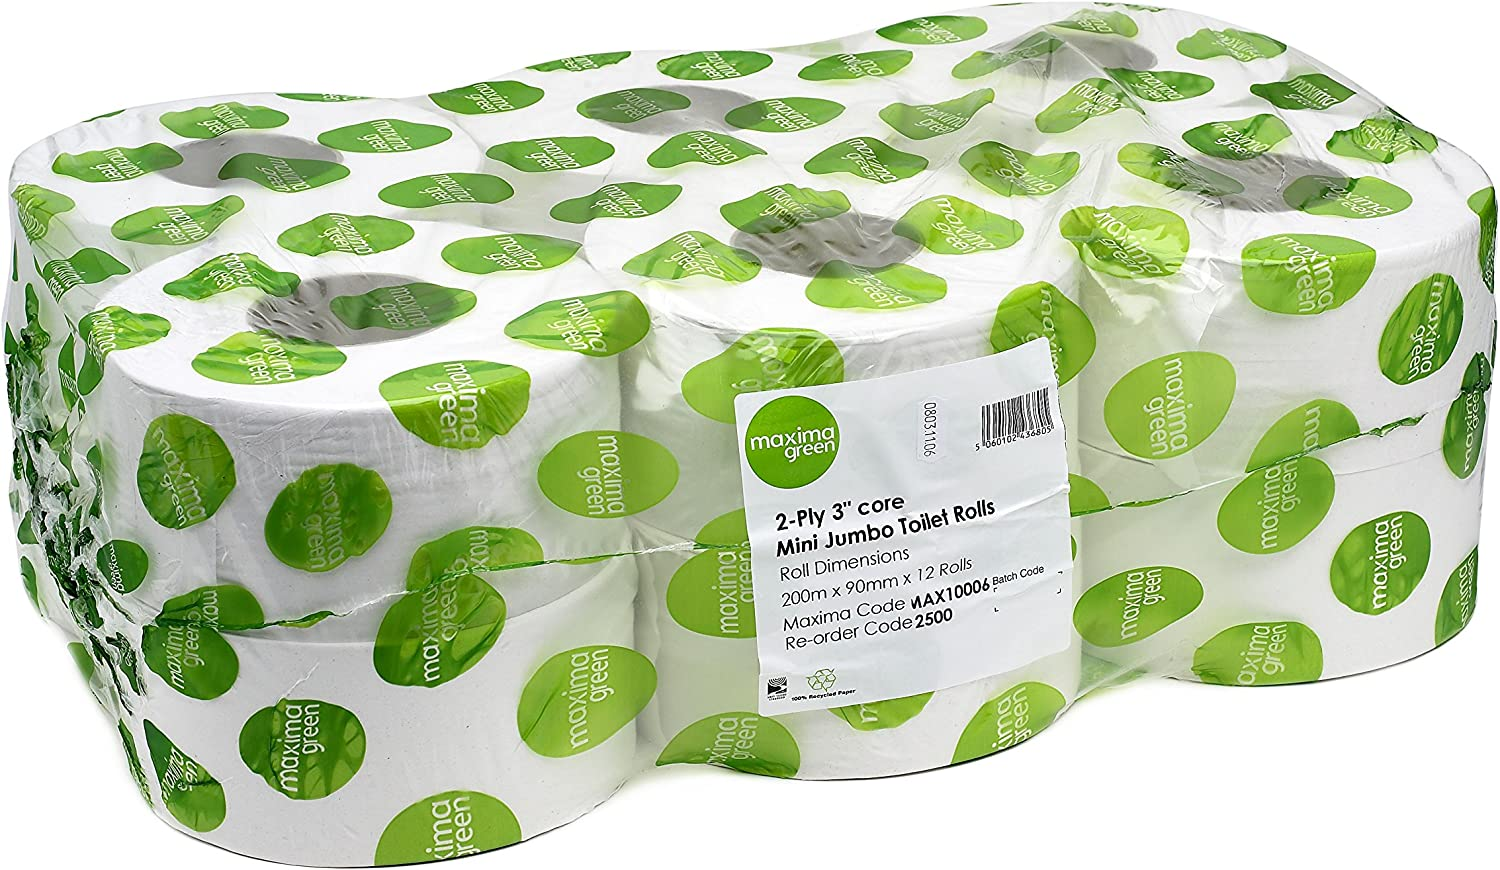 MAXIMA GREEN MINI JUMBO ROLLS 2-PLY 200M WHITE PACK OF 12 ROLLS